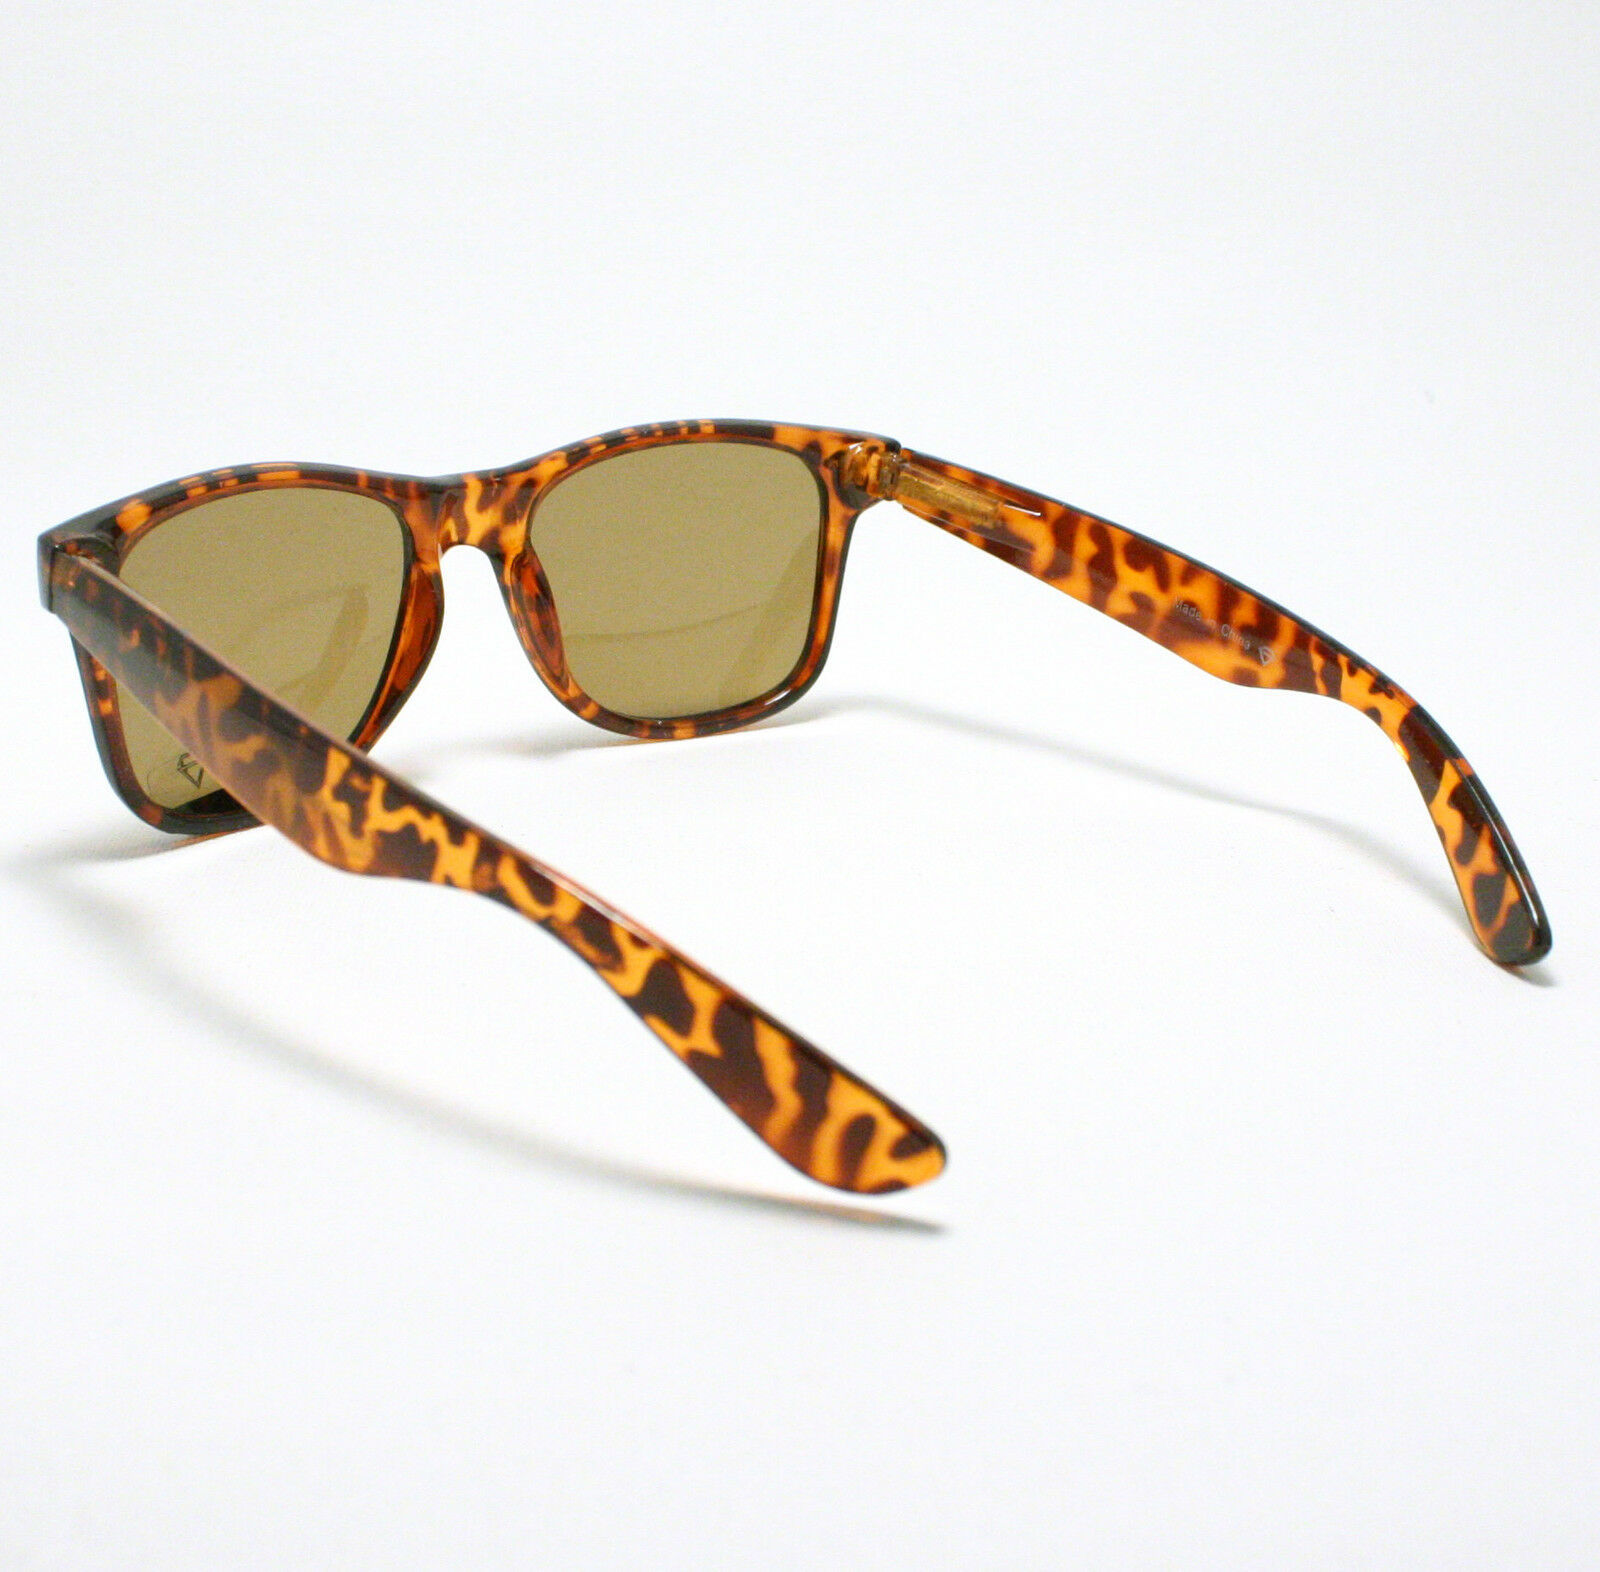 80's Classic Vintage OLD SCHOOL Sunglasses TURTLE SHELL image 4